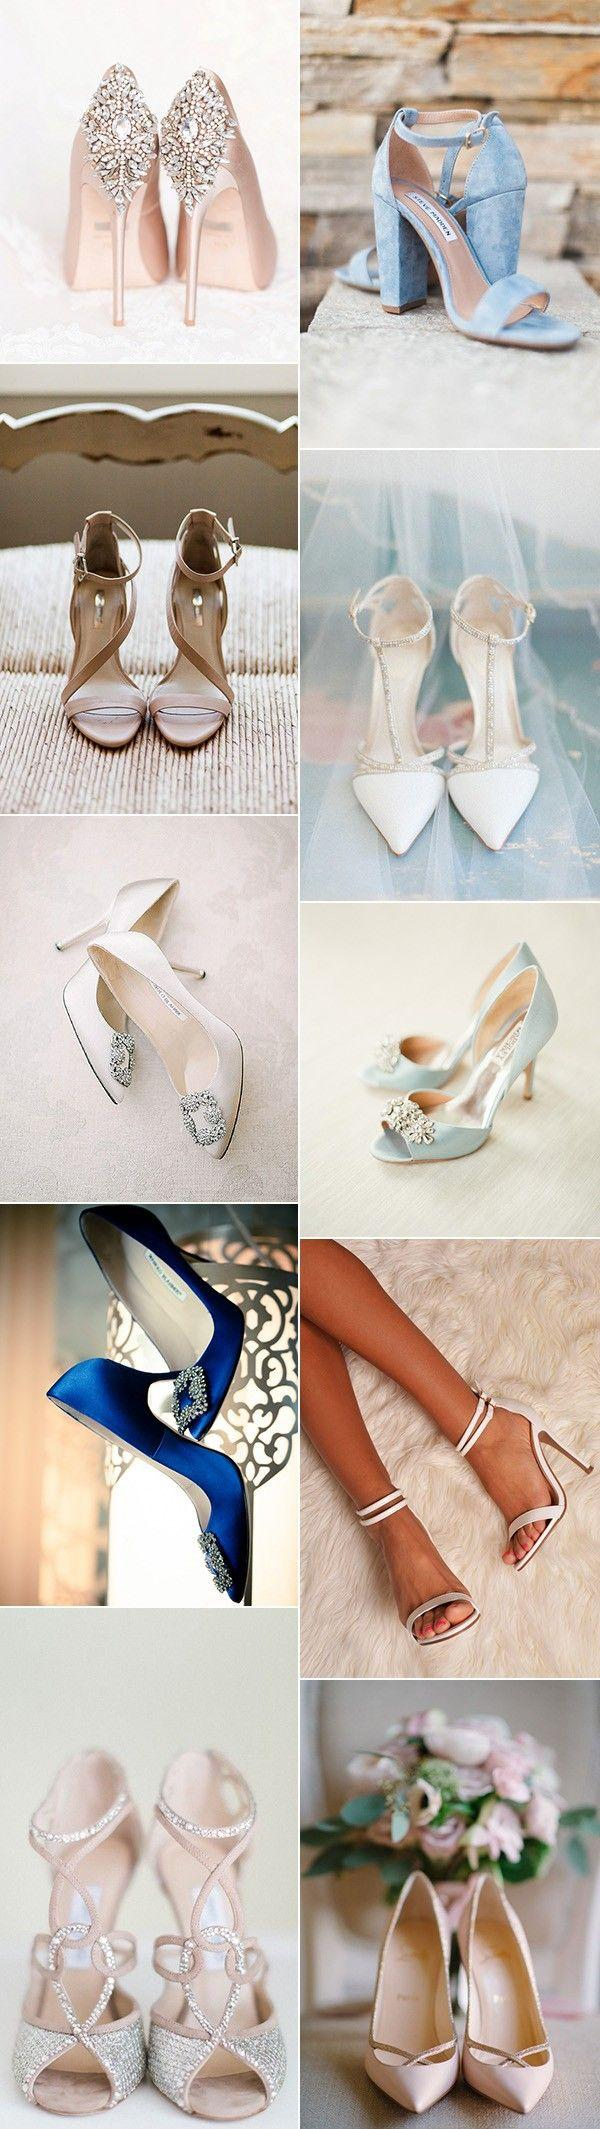 Hochzeit - 20 Hottest Wedding Shoes For 2017 Trends